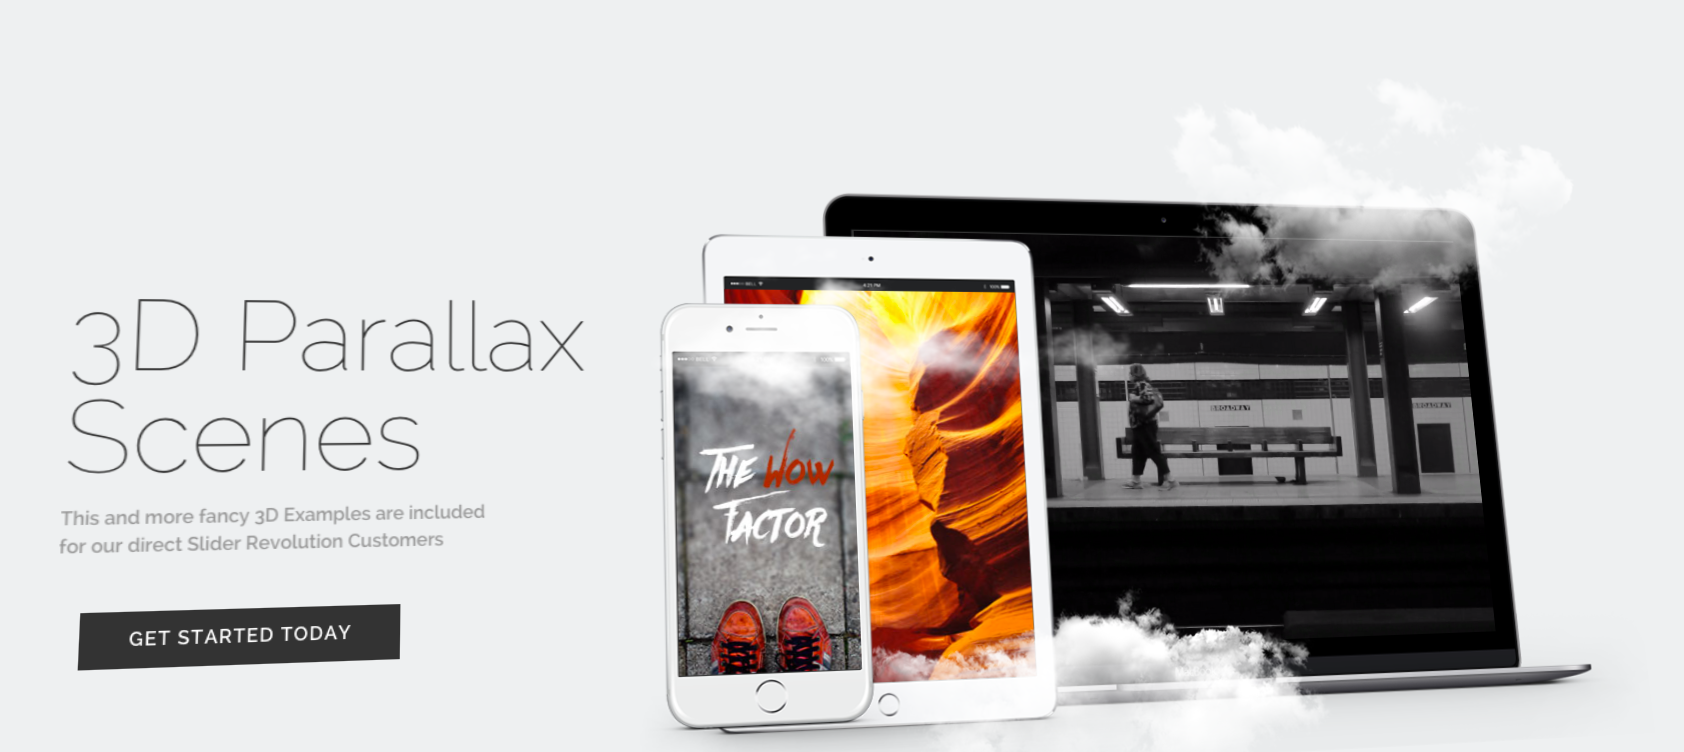 3D Parallax Scenes - You can download this slider template